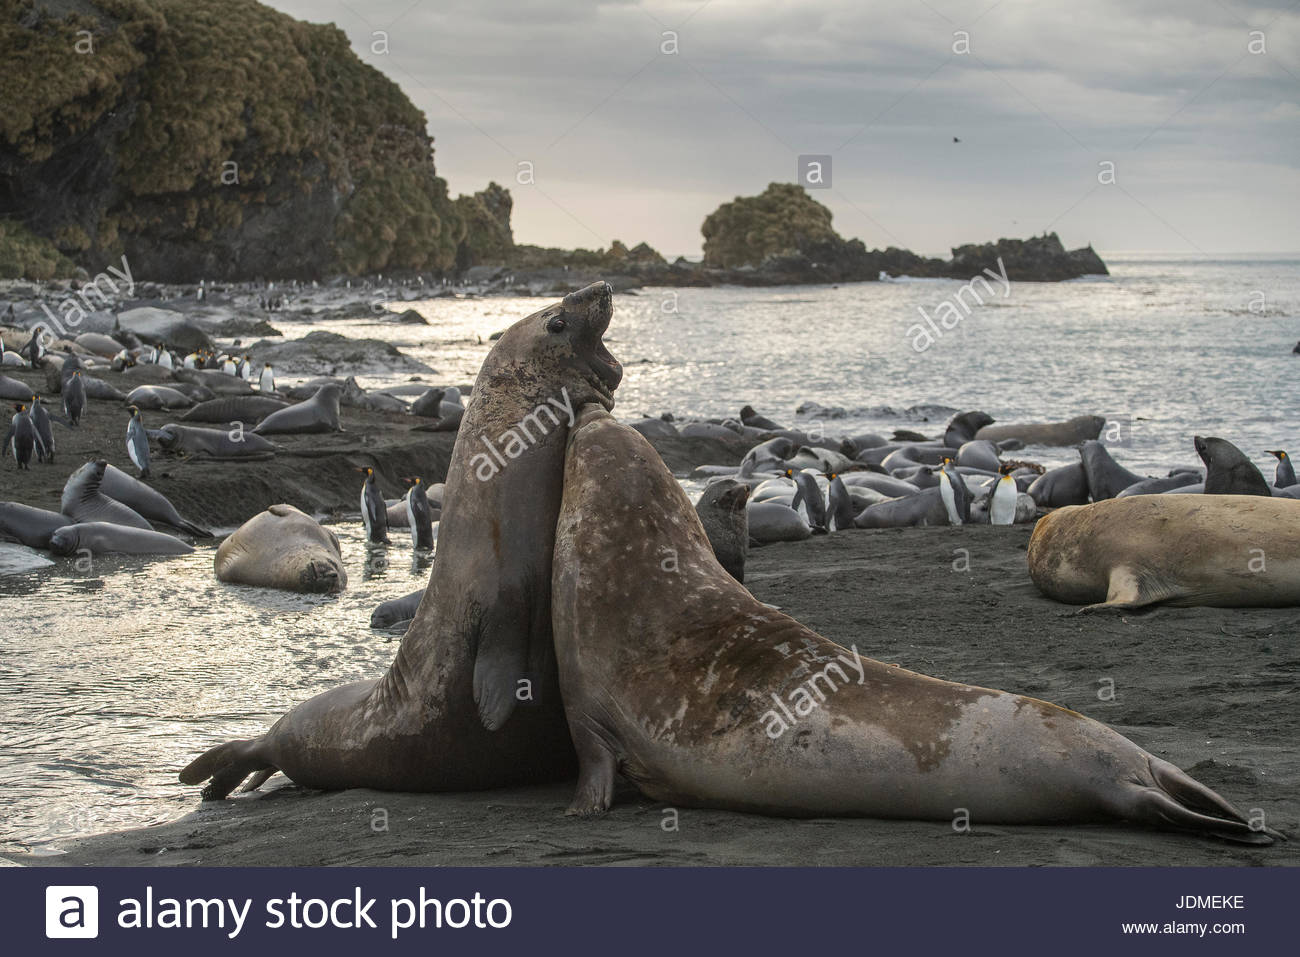 Adult male southern elephant seals fight along the shore. - Stock Image